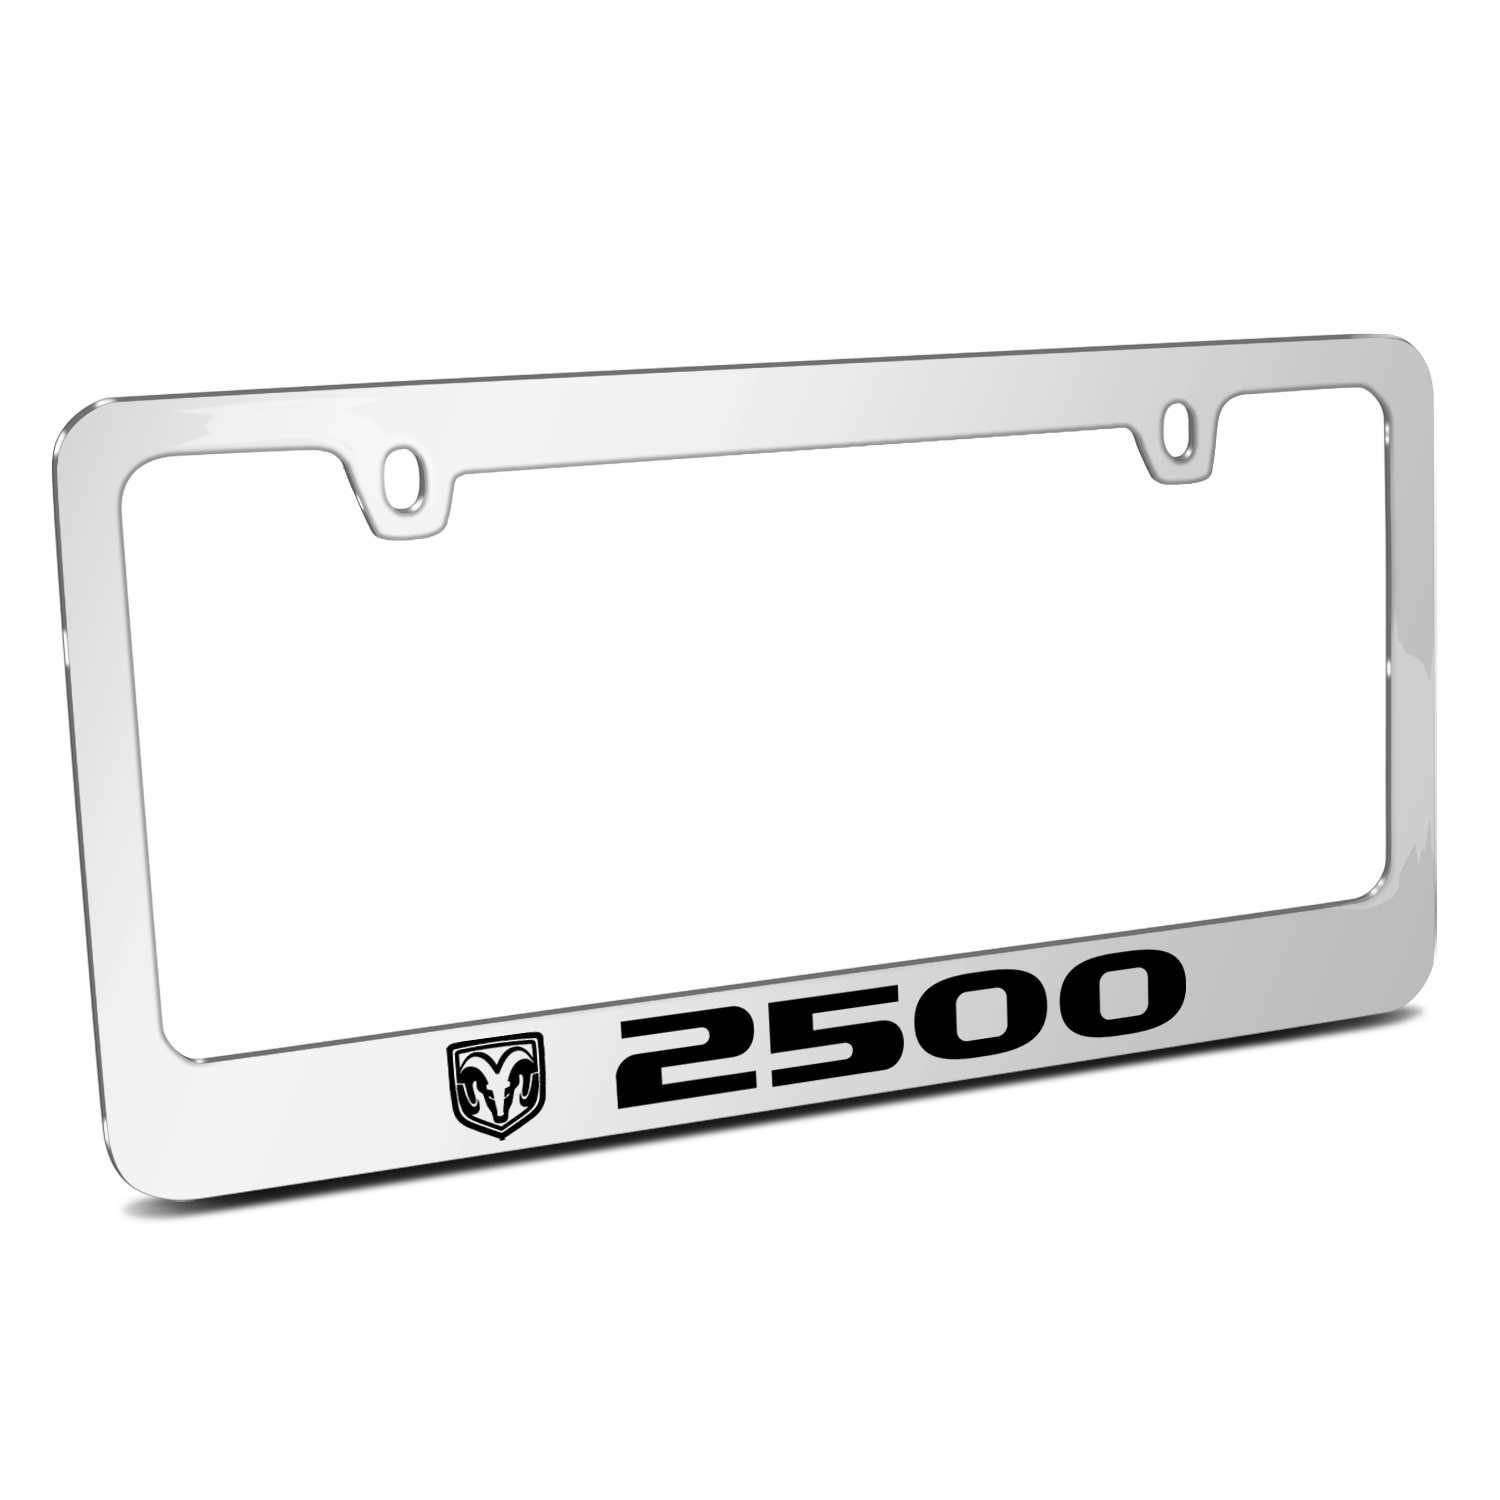 RAM 2500 Logo Mirror Chrome Metal License Plate Frame